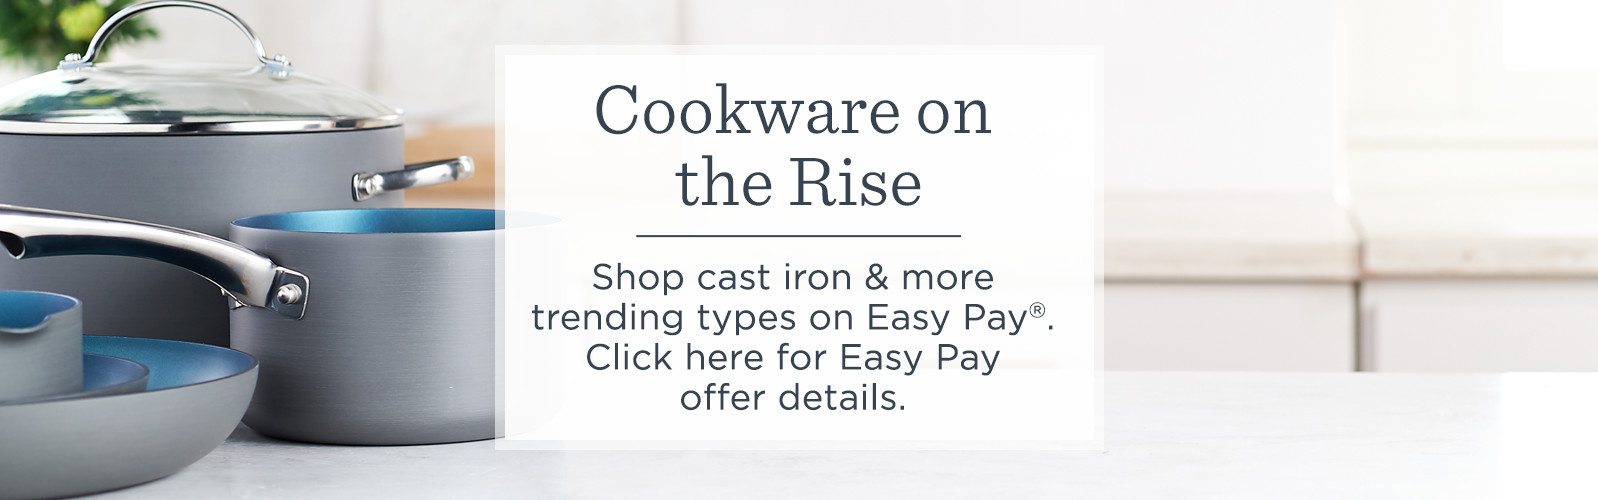 Cookware on the Rise,  Shop cast iron & more trending types on Easy Pay®—own now, pay monthly when using a credit card